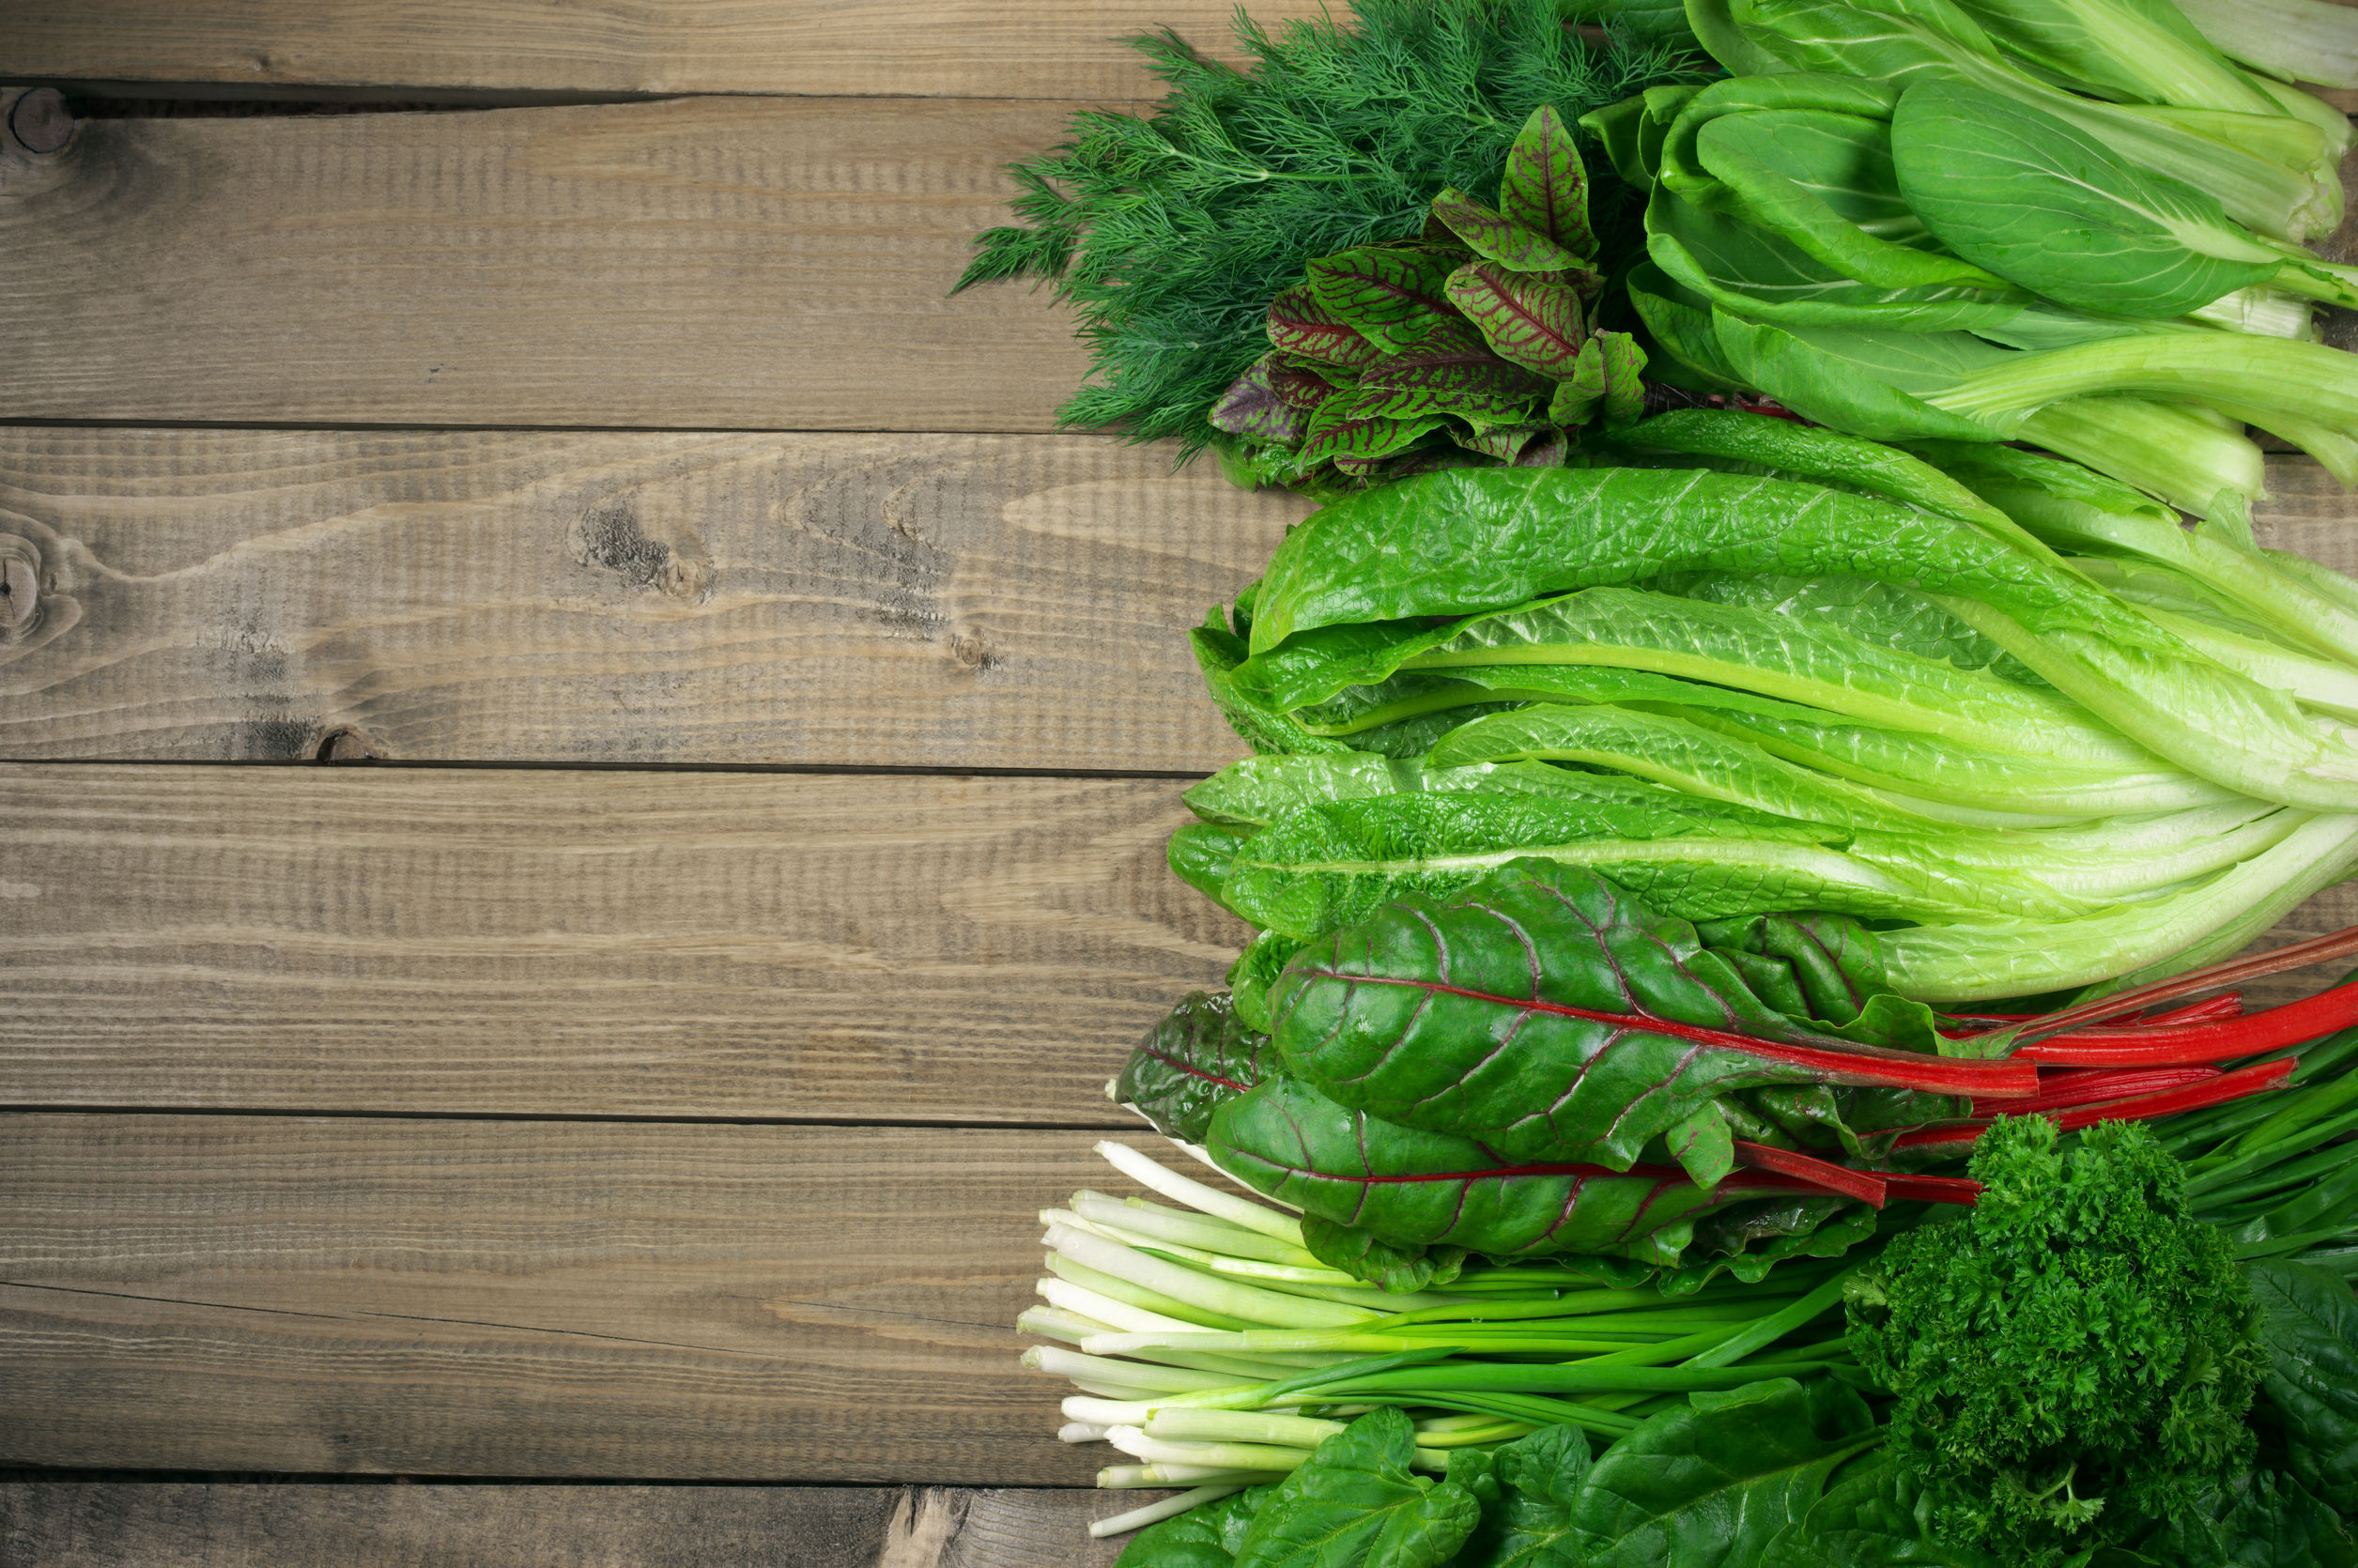 53308576 - spring vitamin set of various green leafy vegetables on rustic wooden table. top view point.